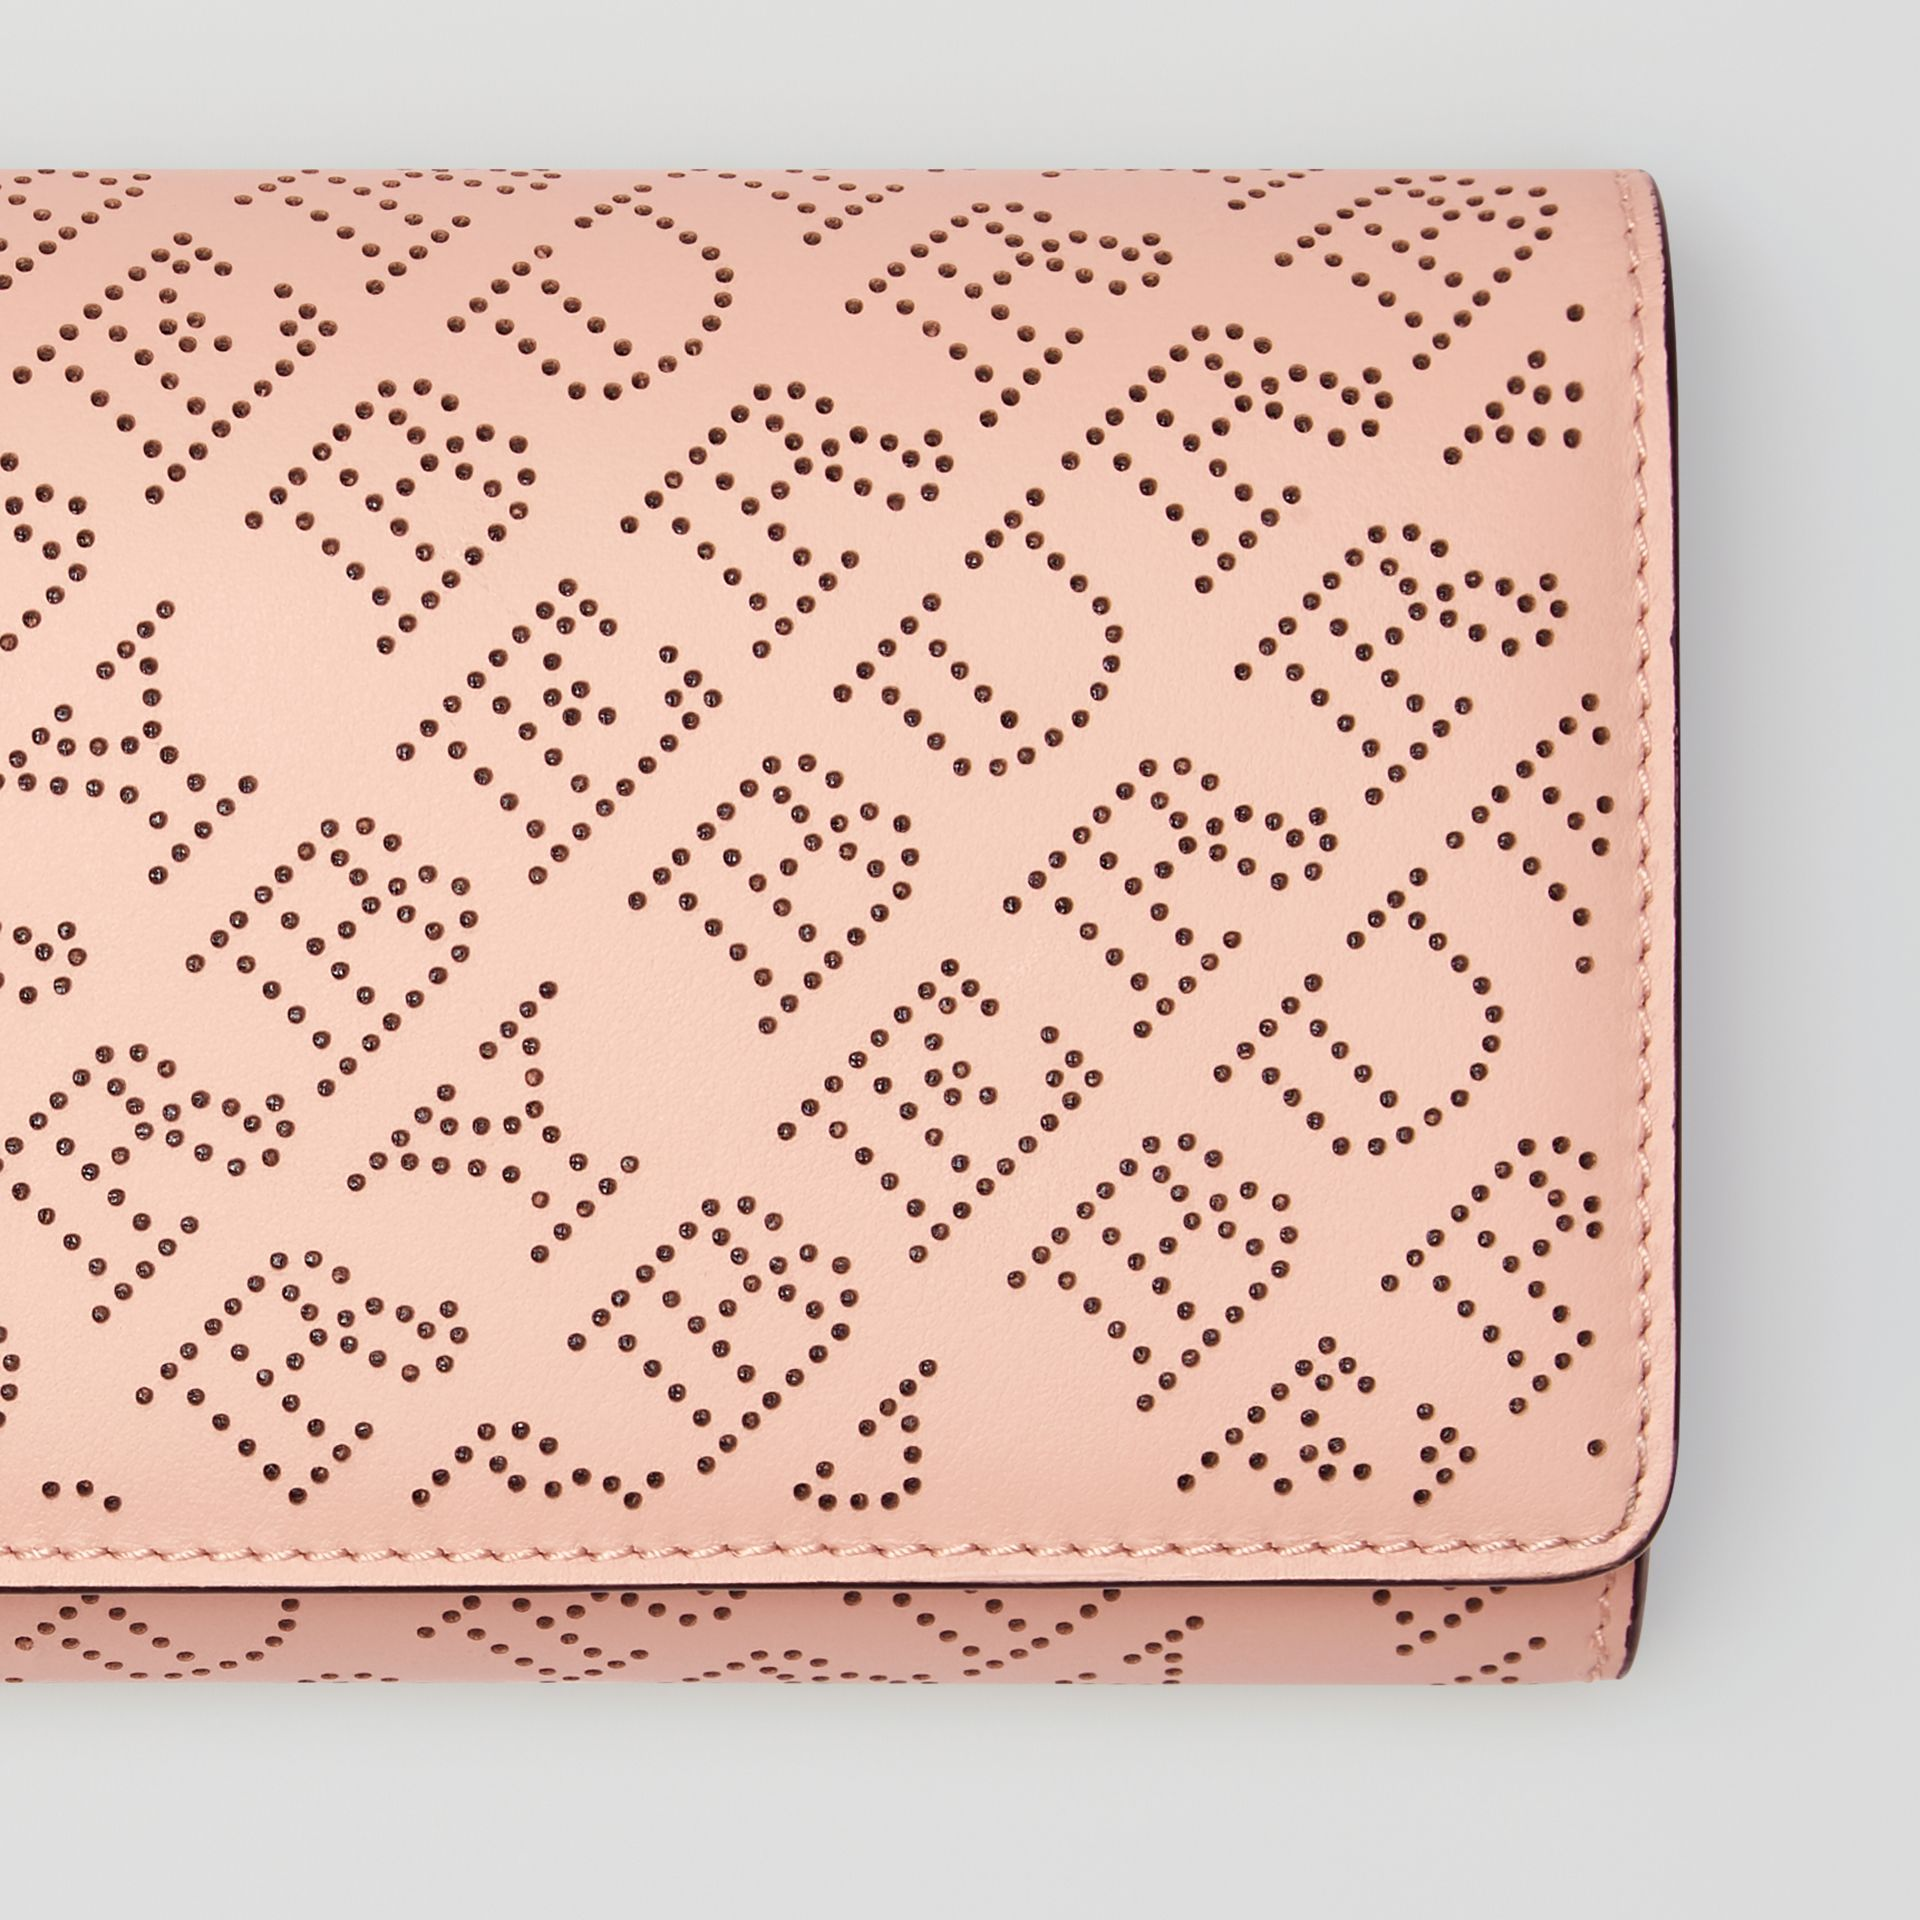 Perforated Logo Leather Wallet with Detachable Strap in Pale Fawn Pink - Women | Burberry - gallery image 1